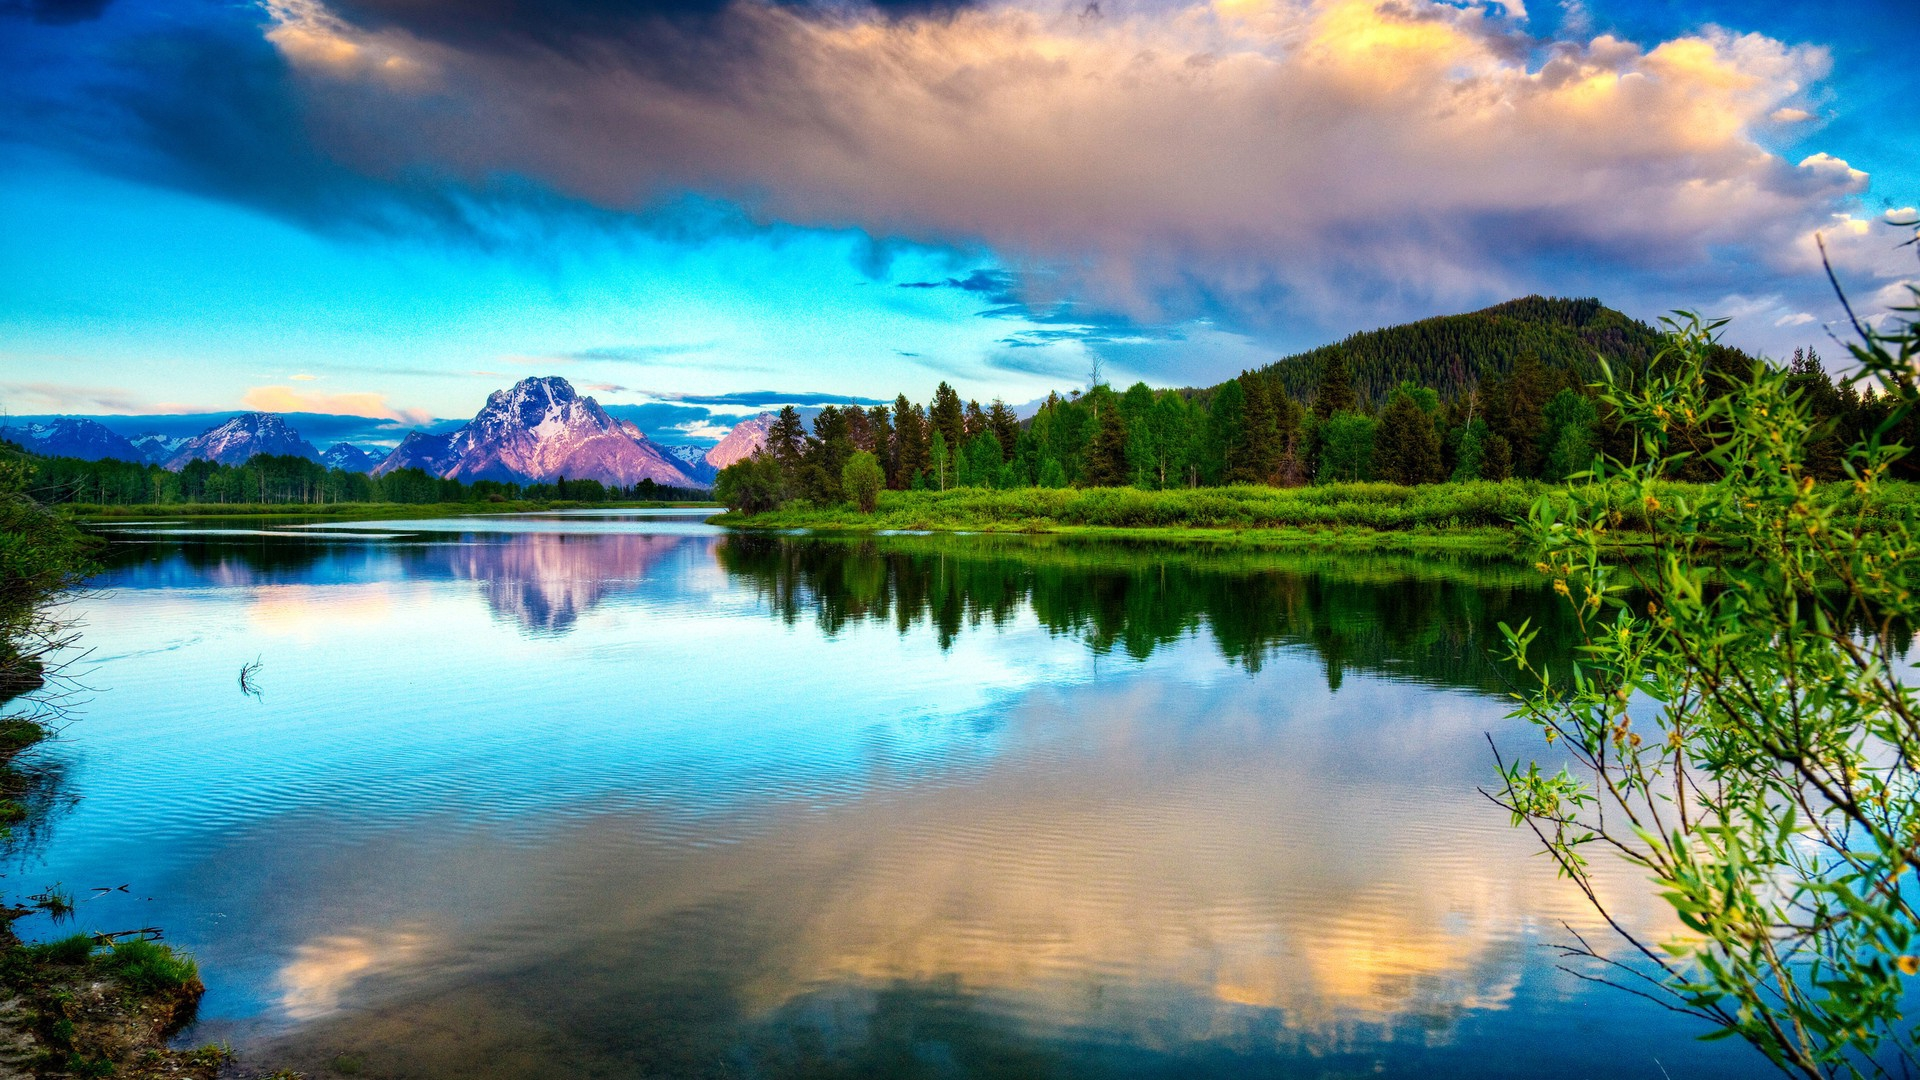 Earnings Disclaimer >> Download Wallpaper 1920x1080 lake, mountains, clouds ...